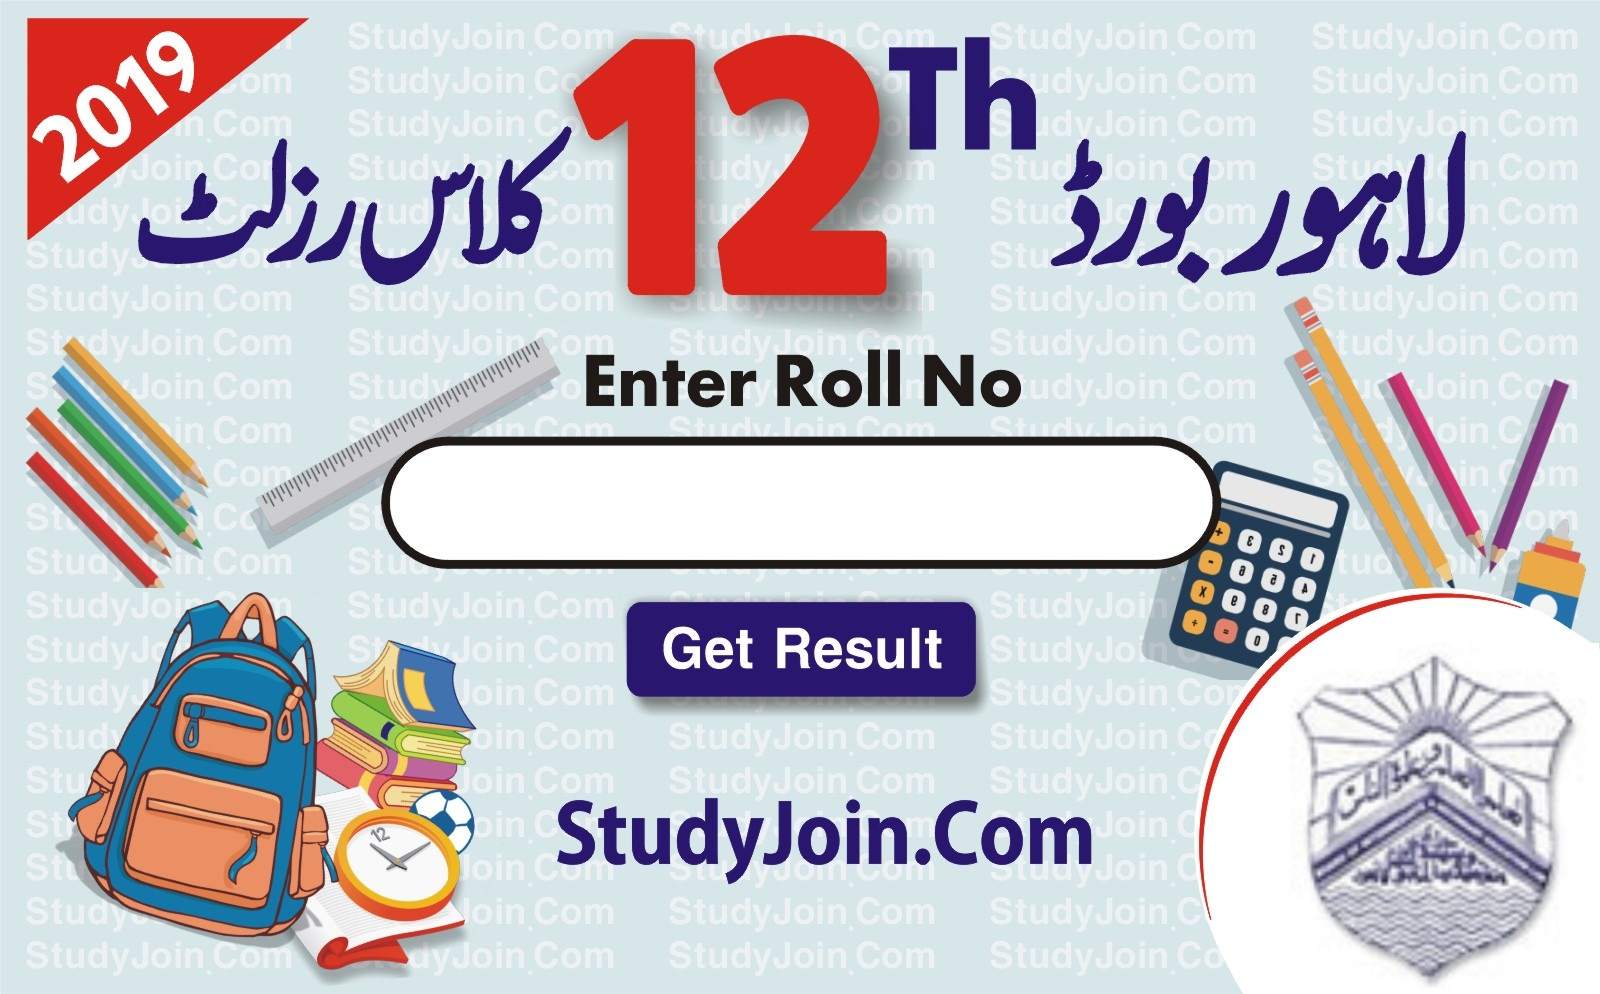 lahore board result 2019 12th Class, Ilbise lahore inter result 2019, bise lahore Annual result 2019, 12th Class bise lahore result 2019, ilm ki dunya results 2019, 2nd year result 2019 lahore board, bise lahore 12th result 2019, bise lahore 11th result 2019, intermediate result 2019 12th, BISE Lahore SSC, HSSC, FA, FSc, ICS ICom Result 2019, ilmkidunya result 2019, ilm ki duniya result 2019 12th class